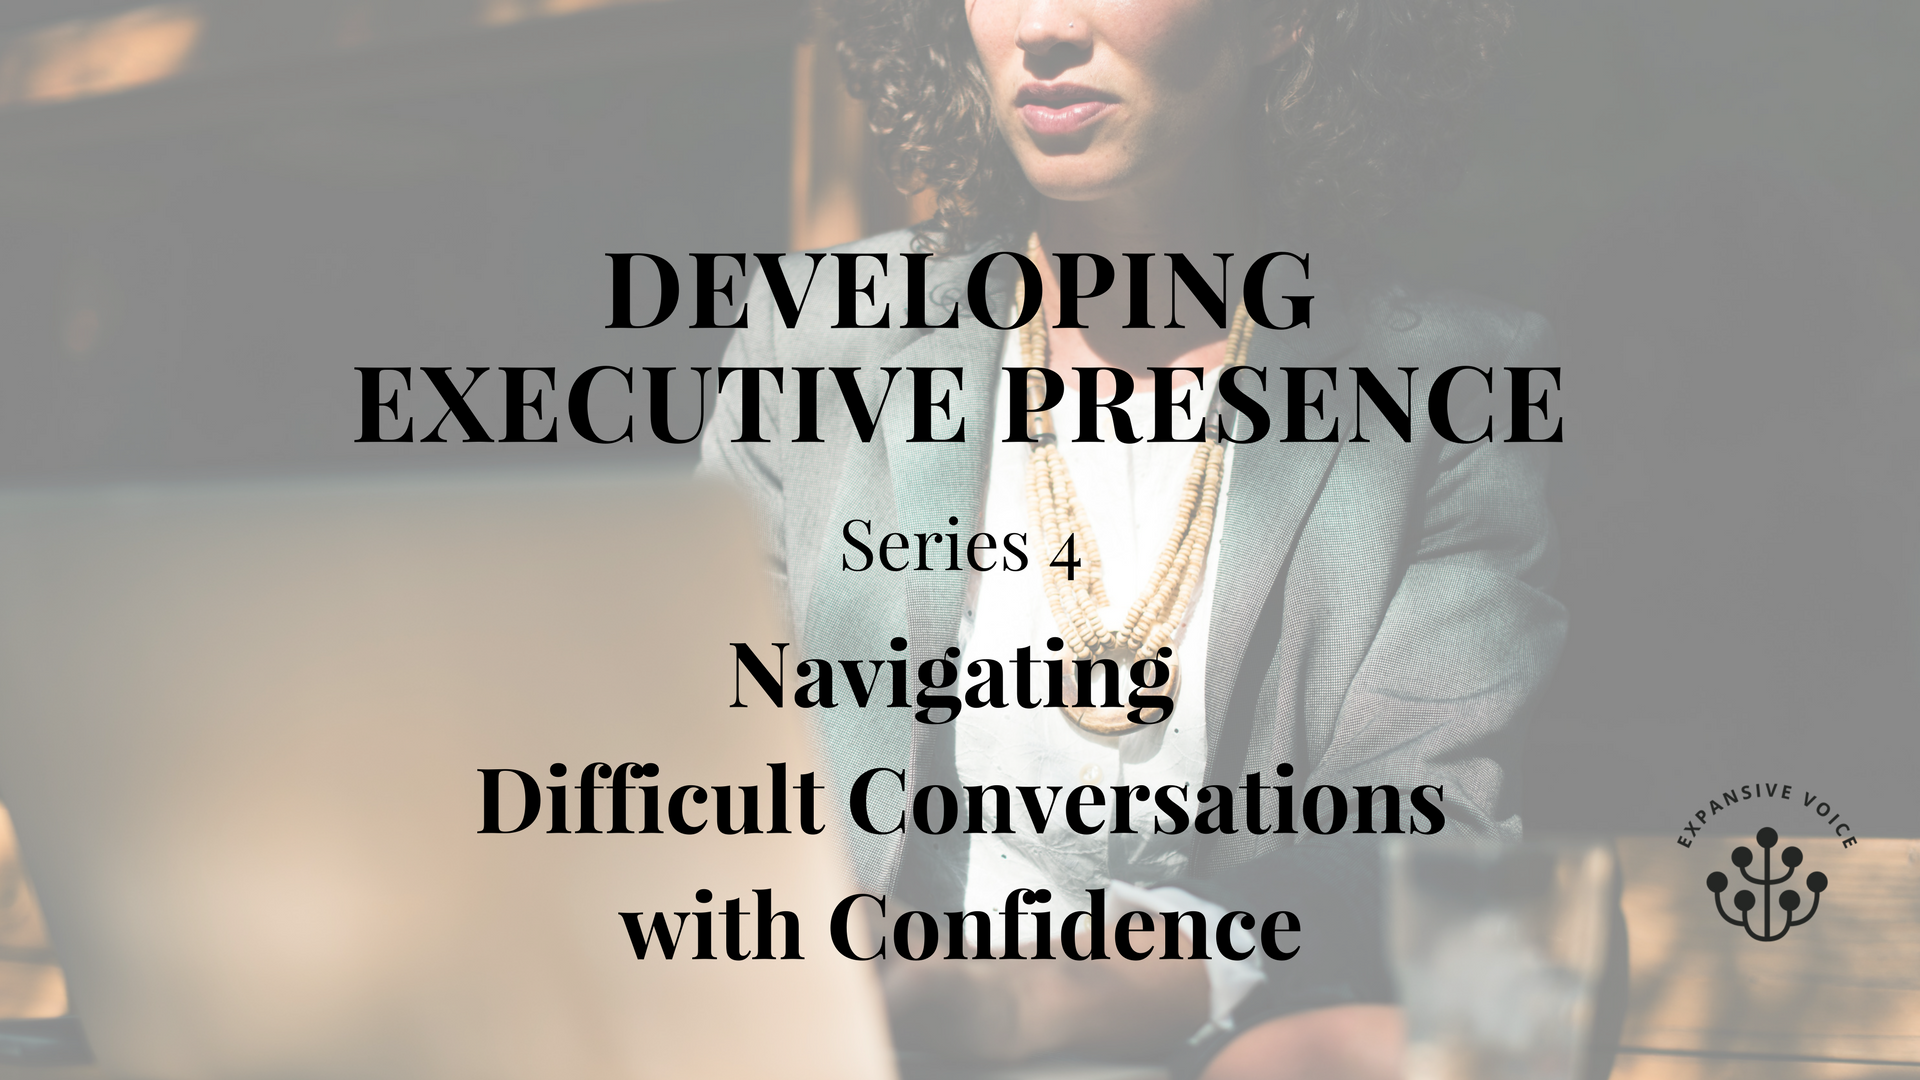 Developing Executive Presence Series 4.png